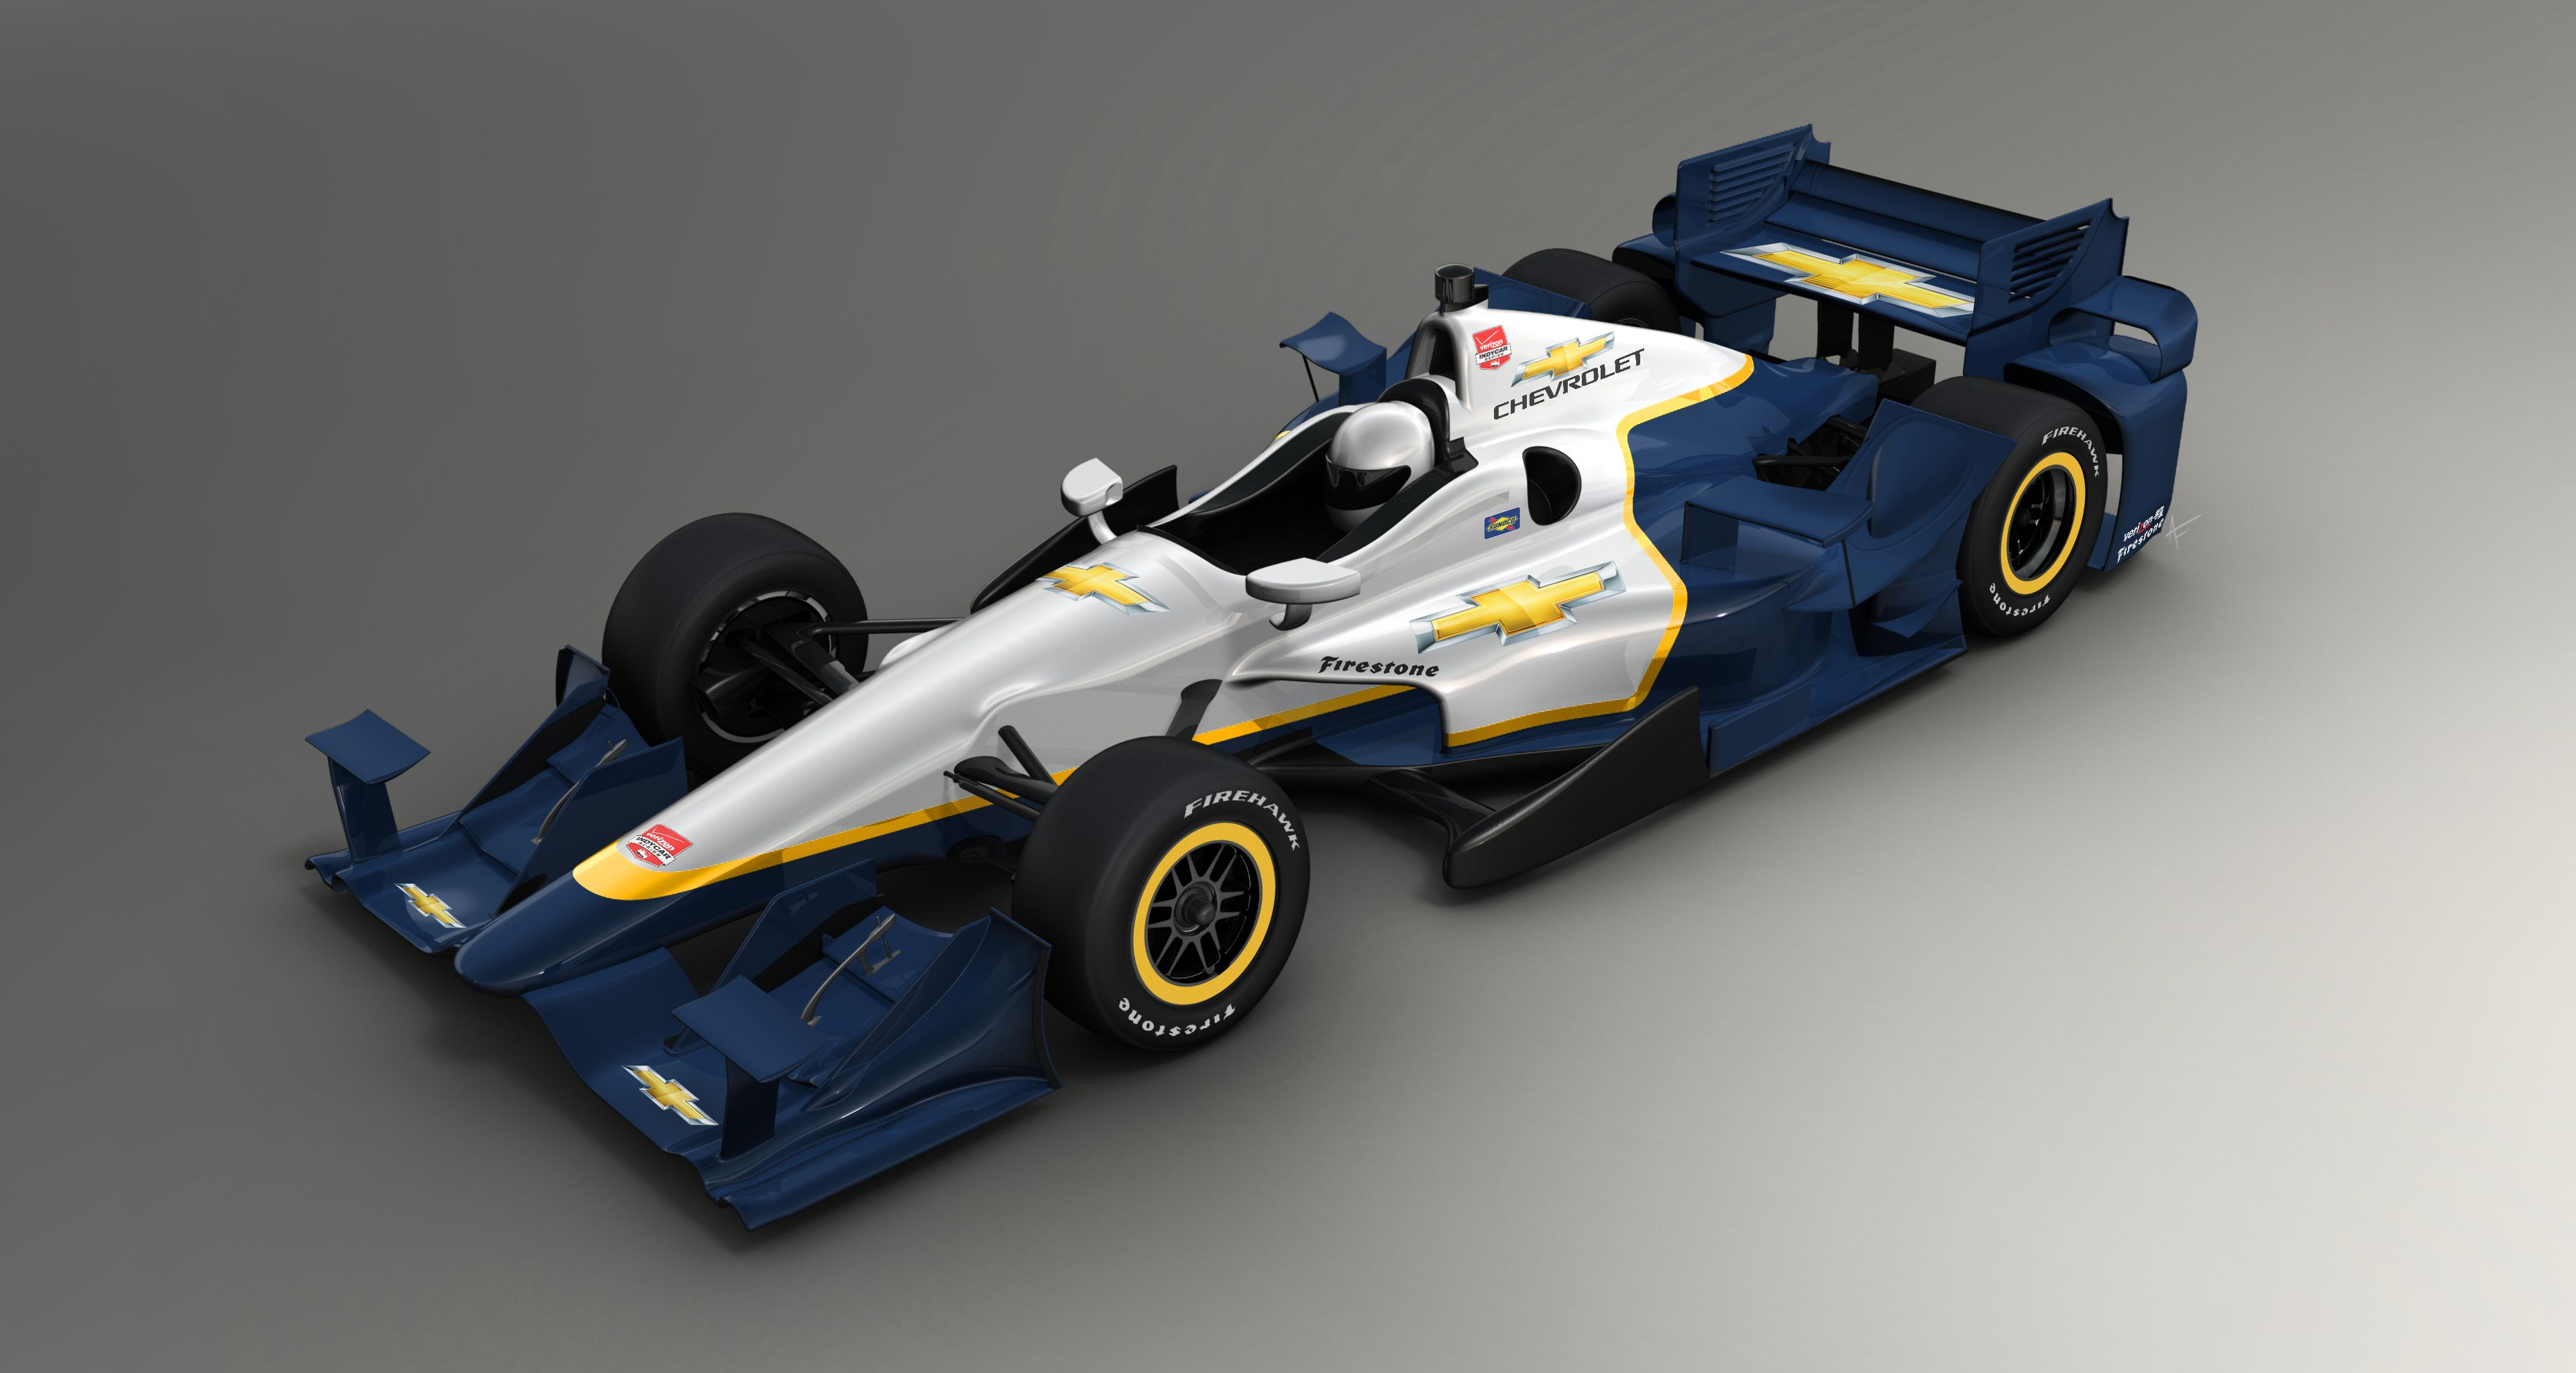 Design of race car chassis